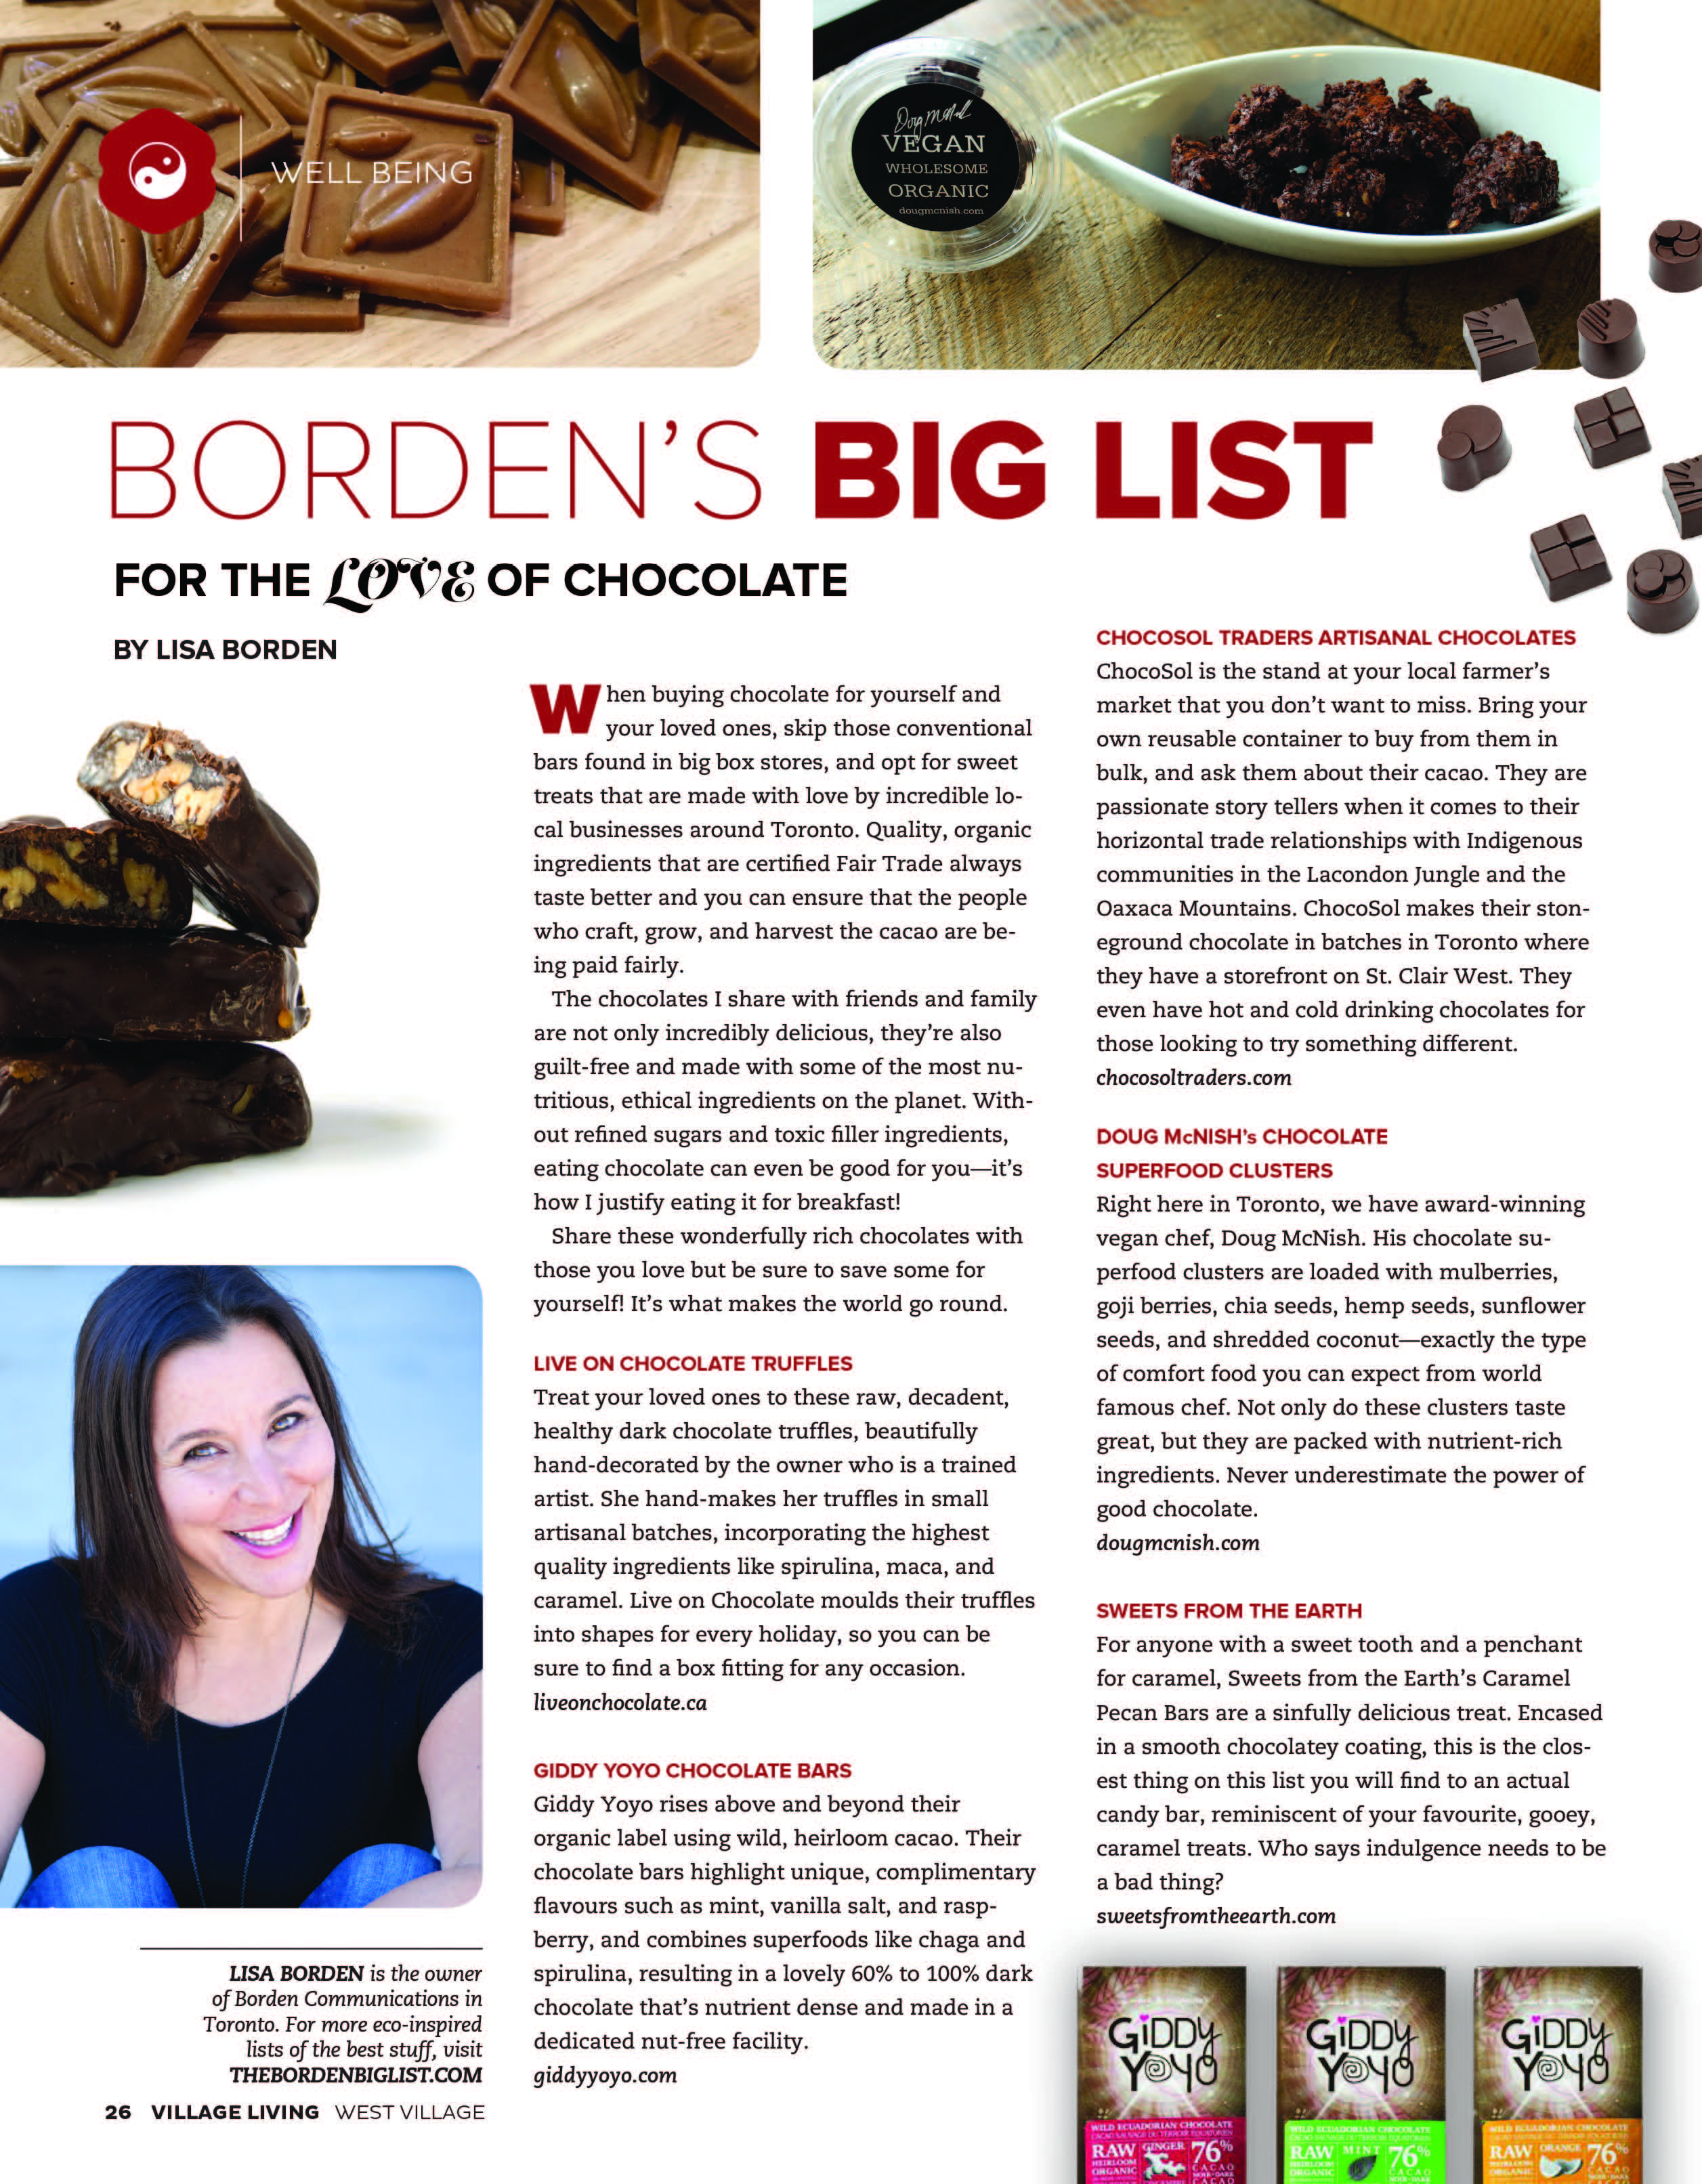 For The Love Of Chocolate, Village Living Magazine